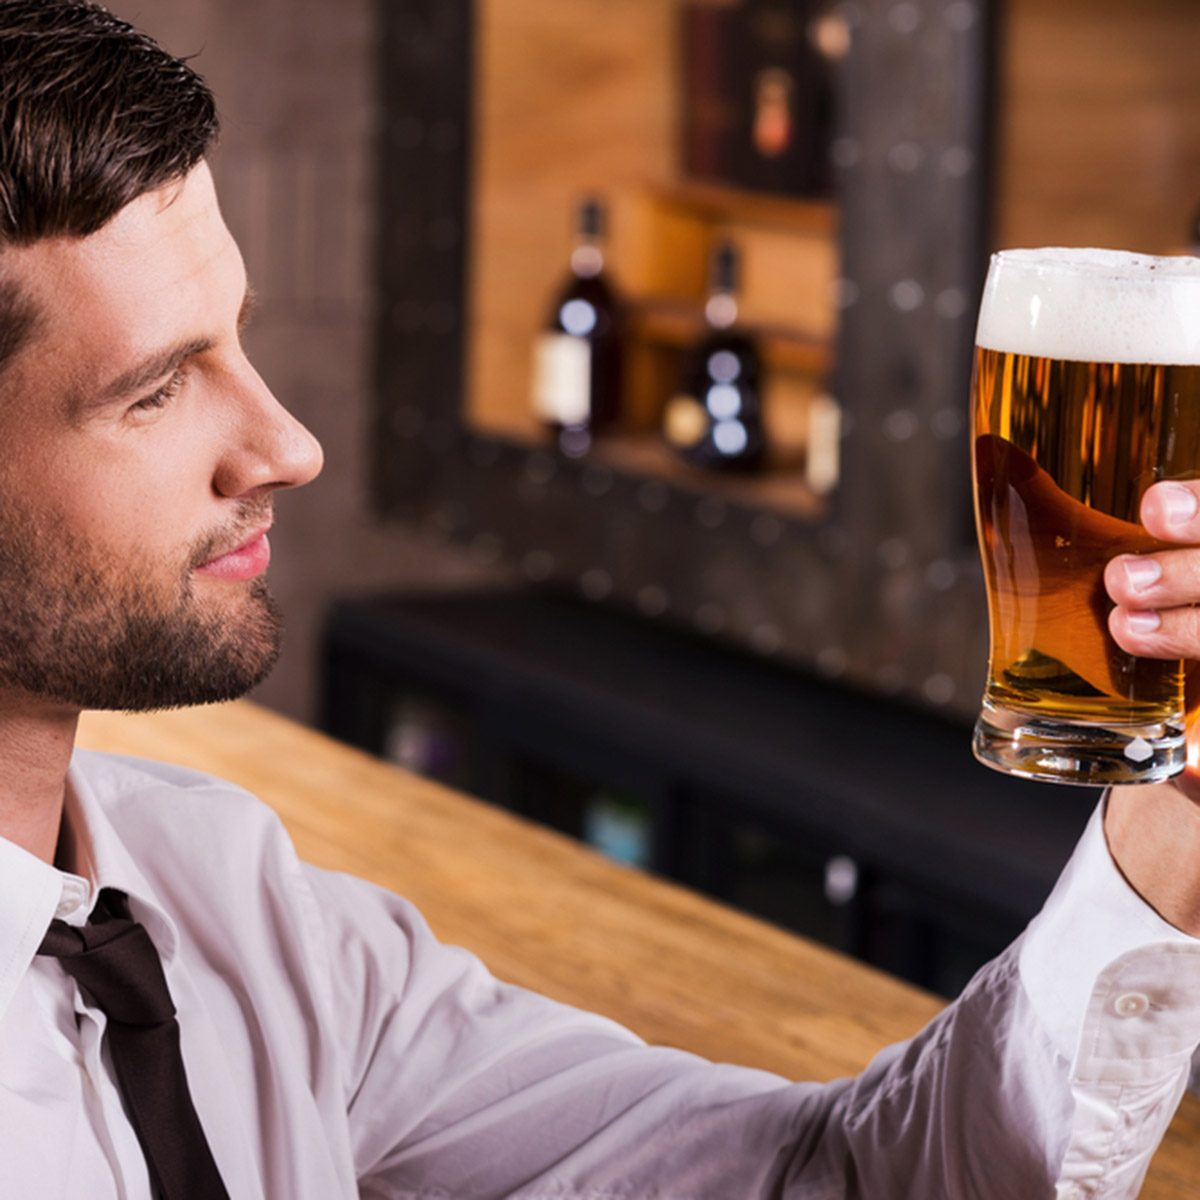 Side view of handsome young man in shirt and tie examining glass with beer and smiling while sitting at the bar counter